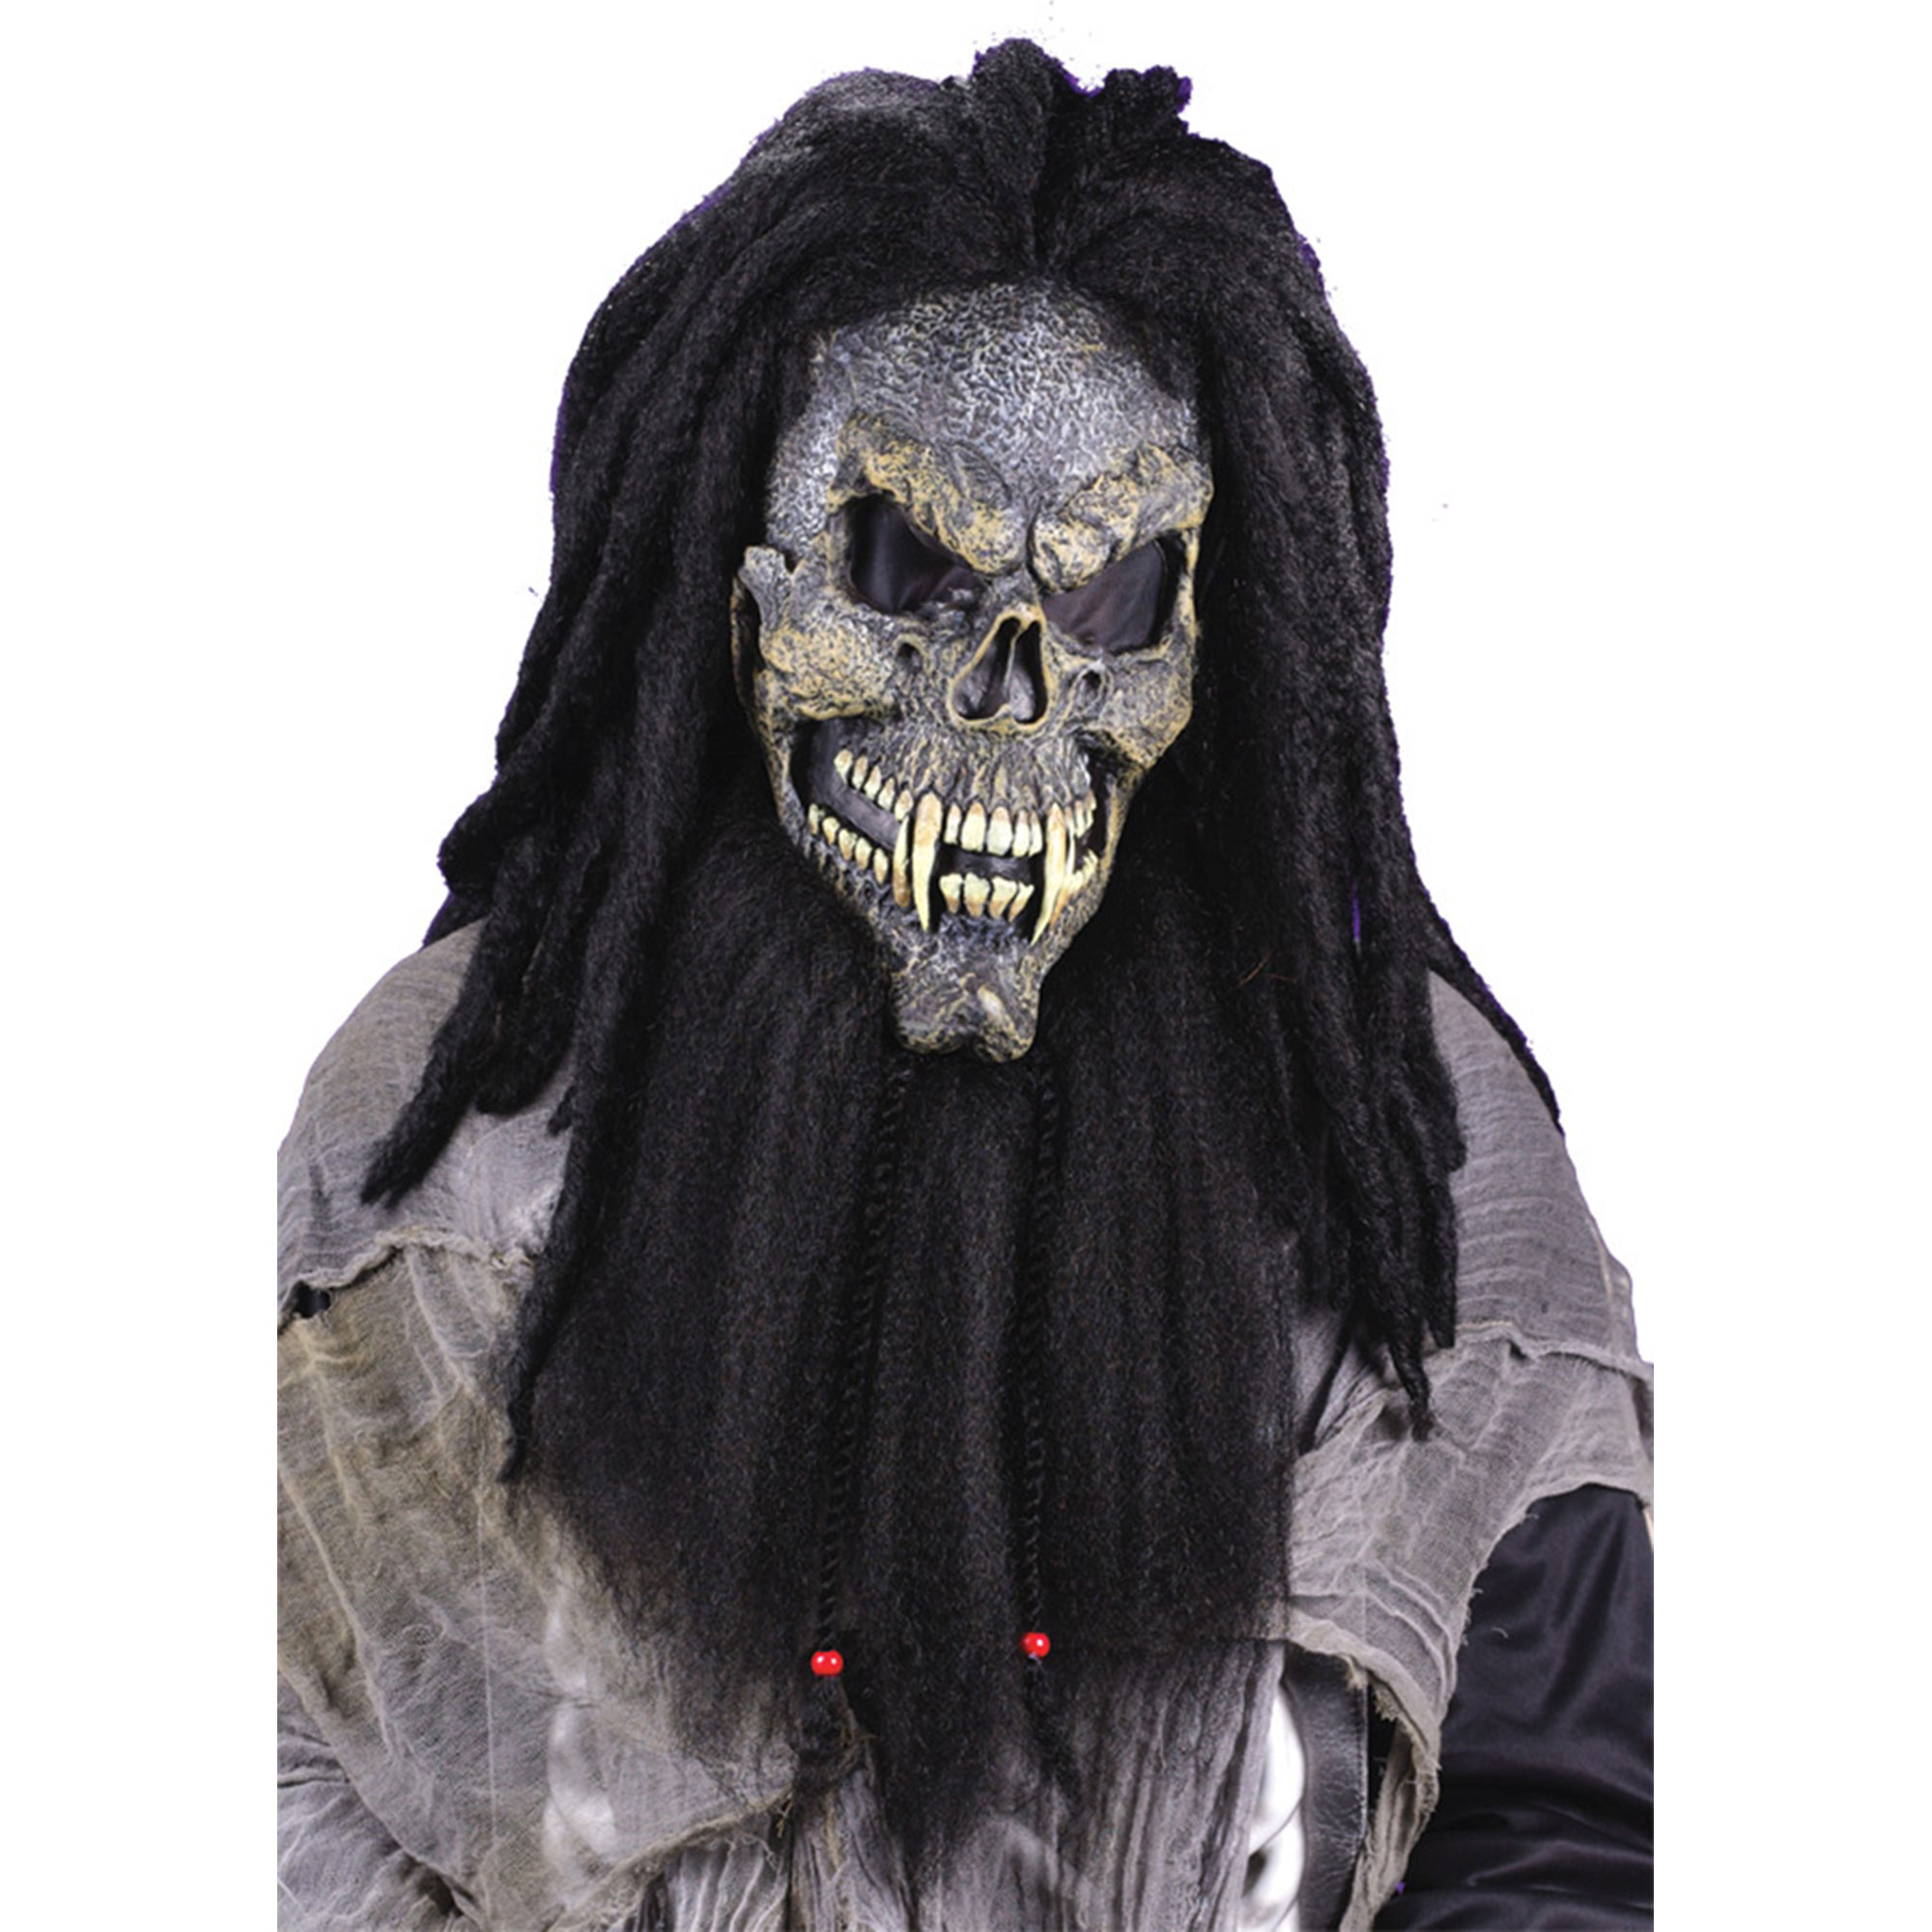 Morris Costumes Fearsome Faces Long Hair Latex Halloween Skull Mask, Style FW8507S